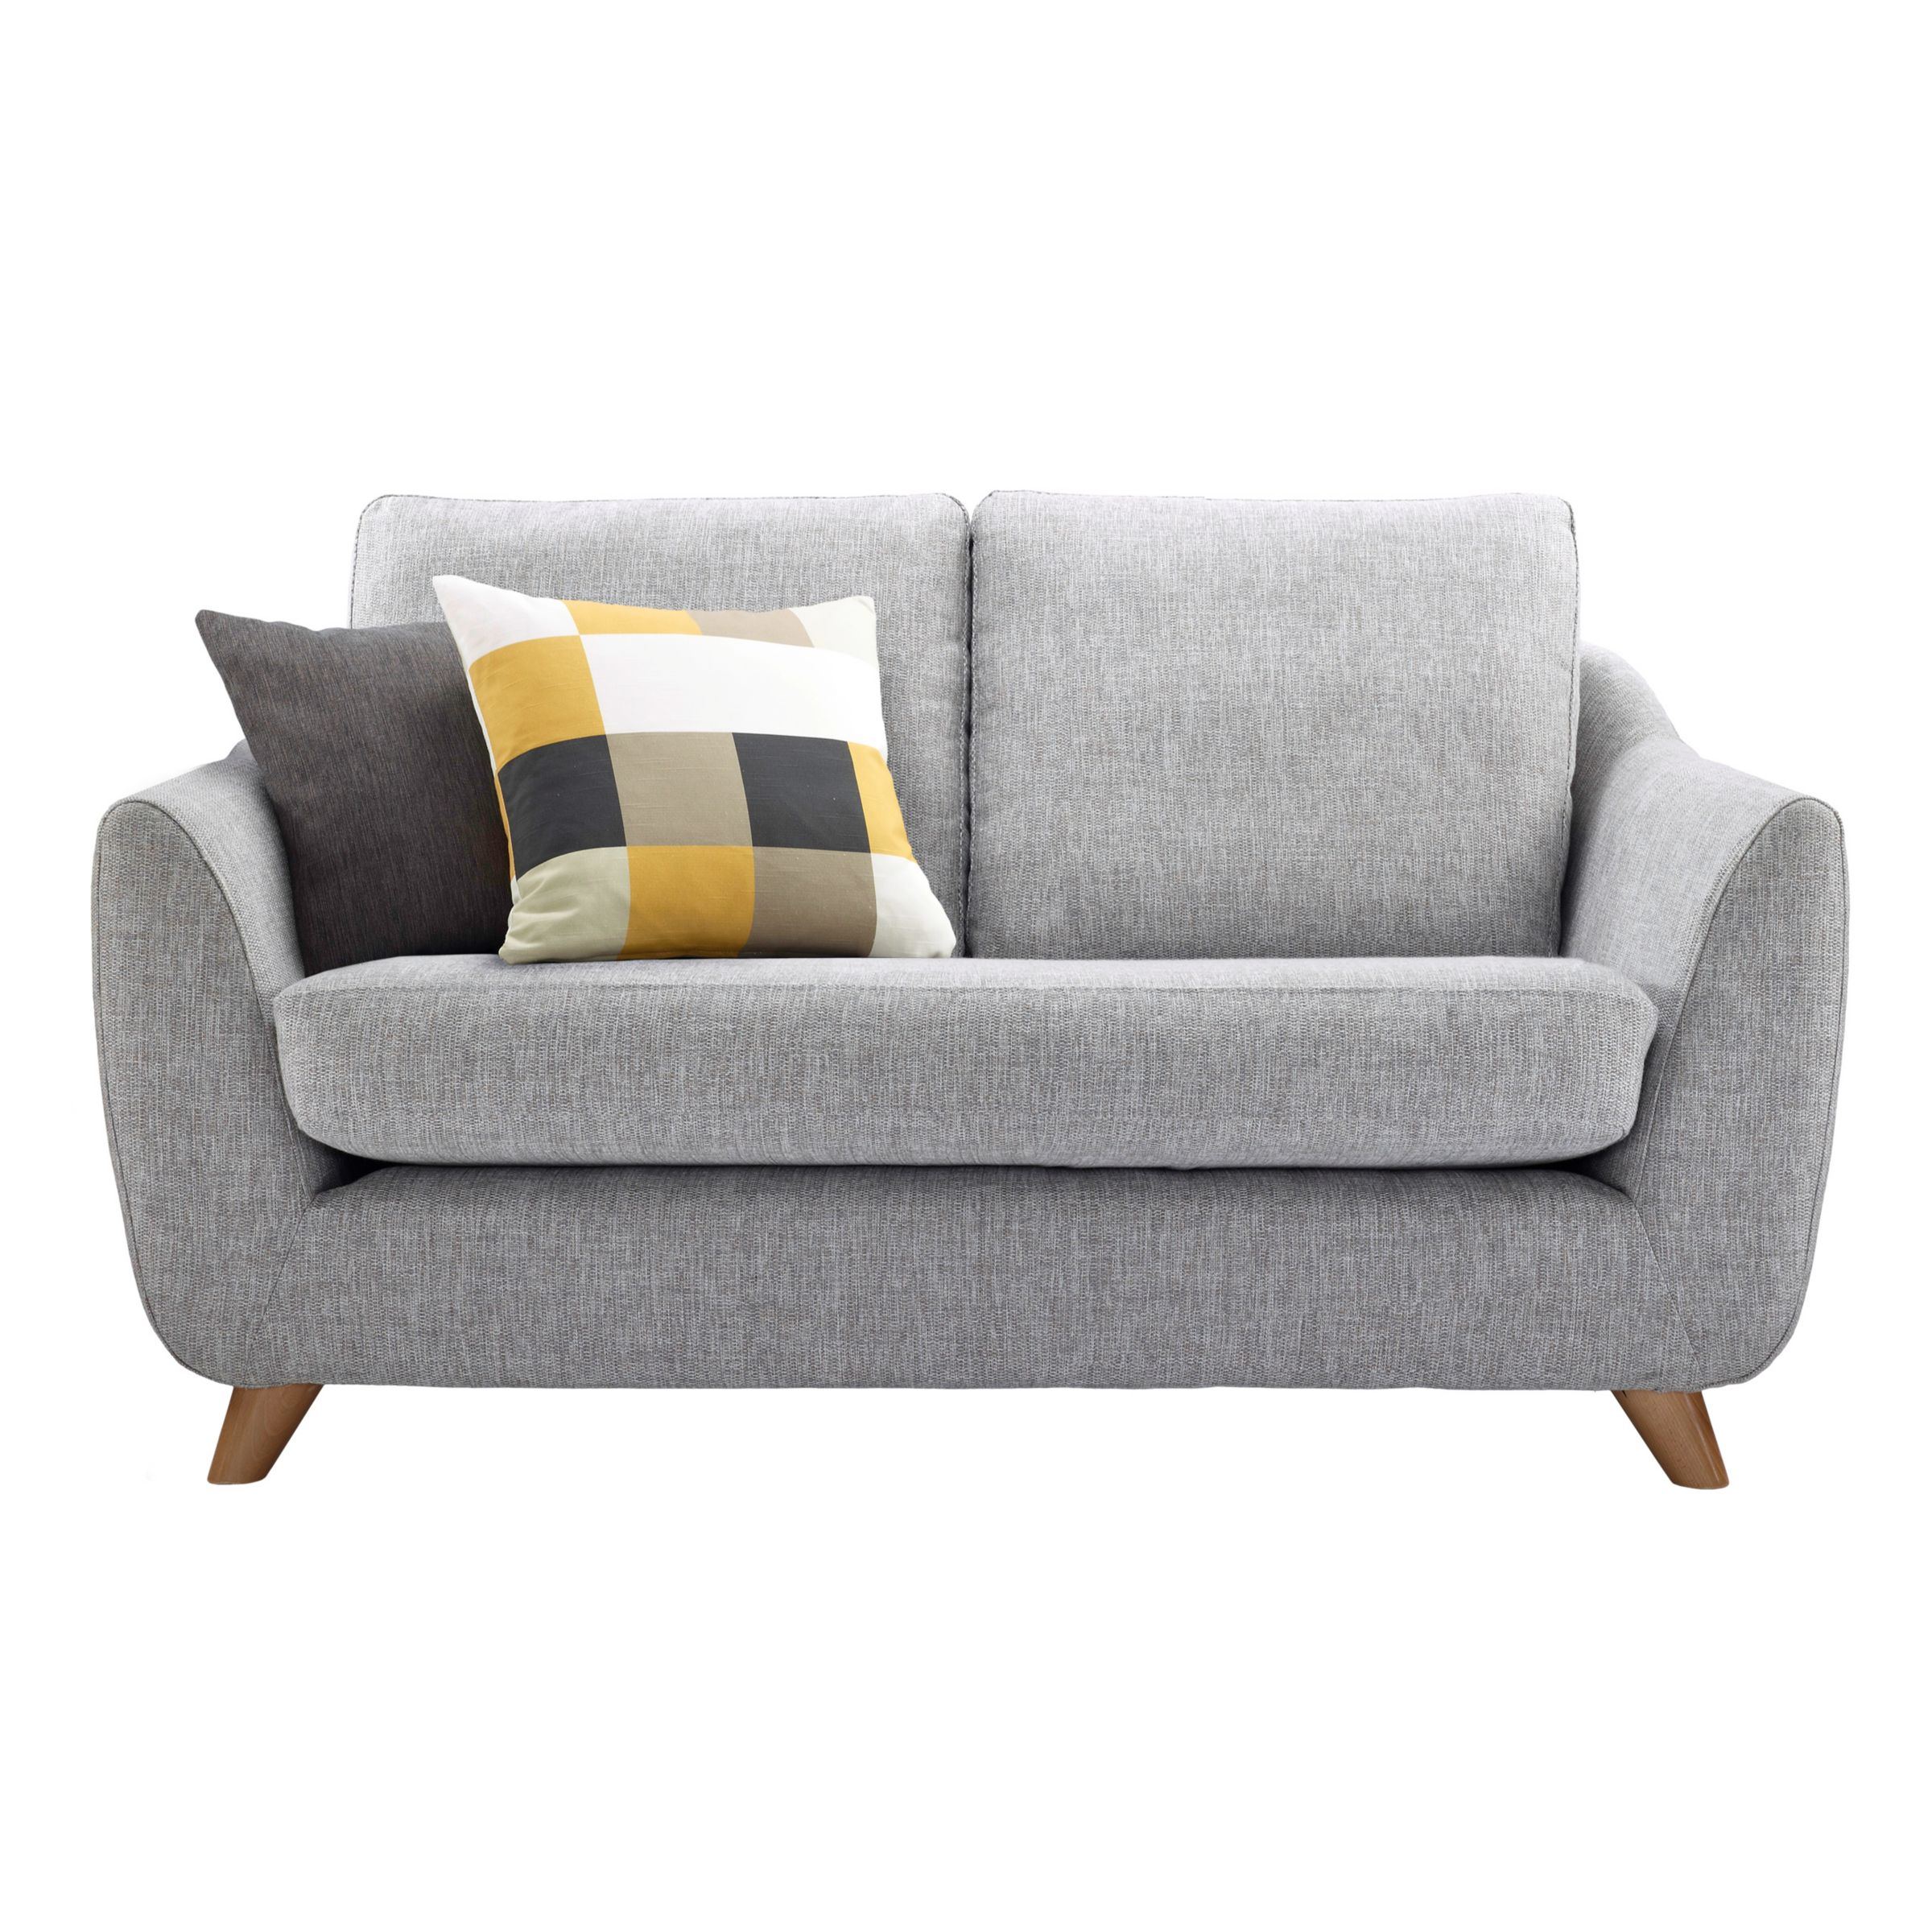 G Plan Vintage The Sixty Seven Small Sofa, Marl Grey